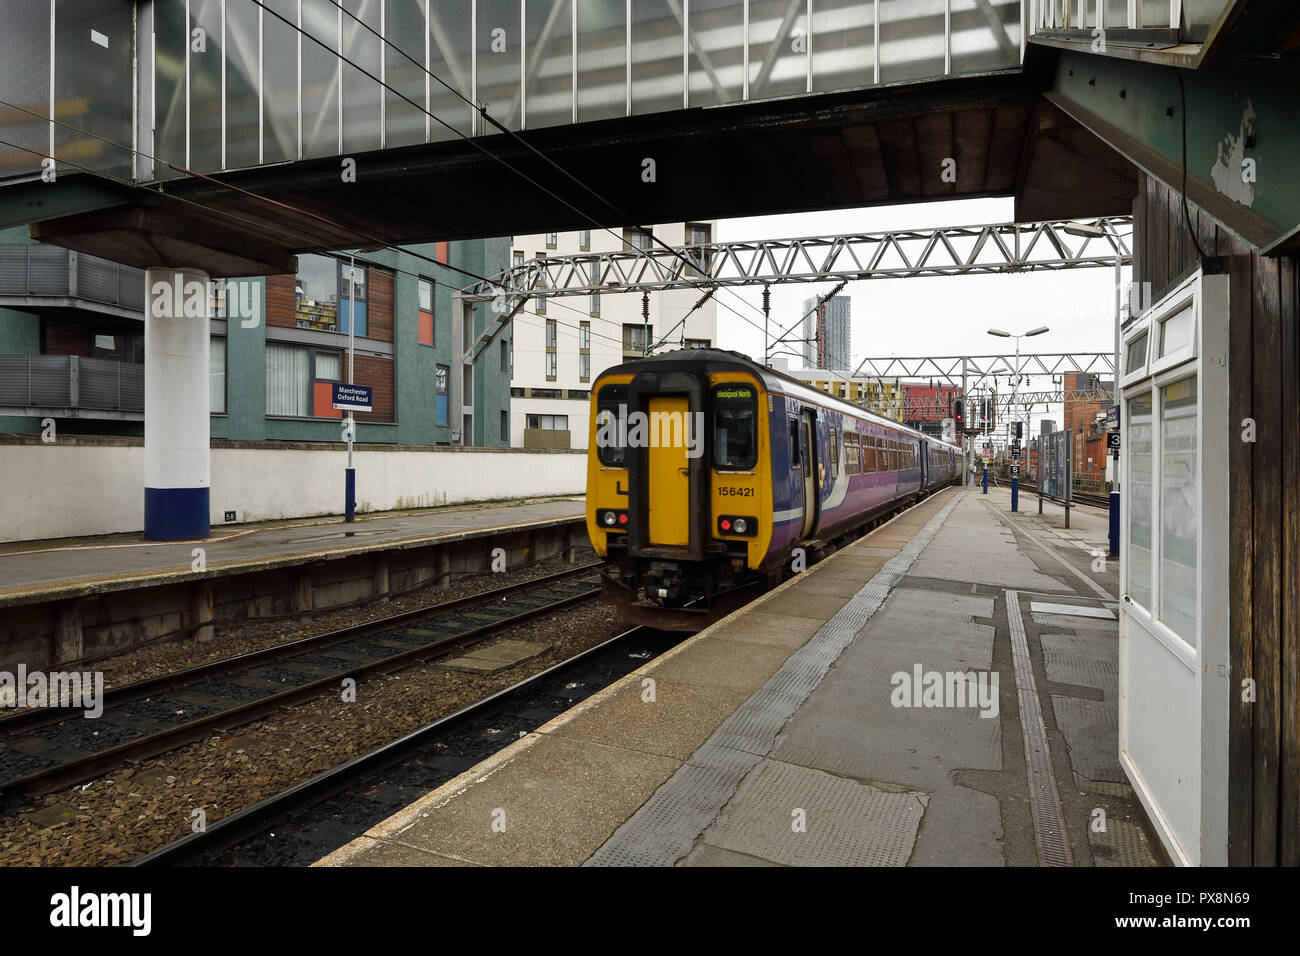 A train leaving Manchester Oxford Road station in Manchester city centre UK - Stock Image